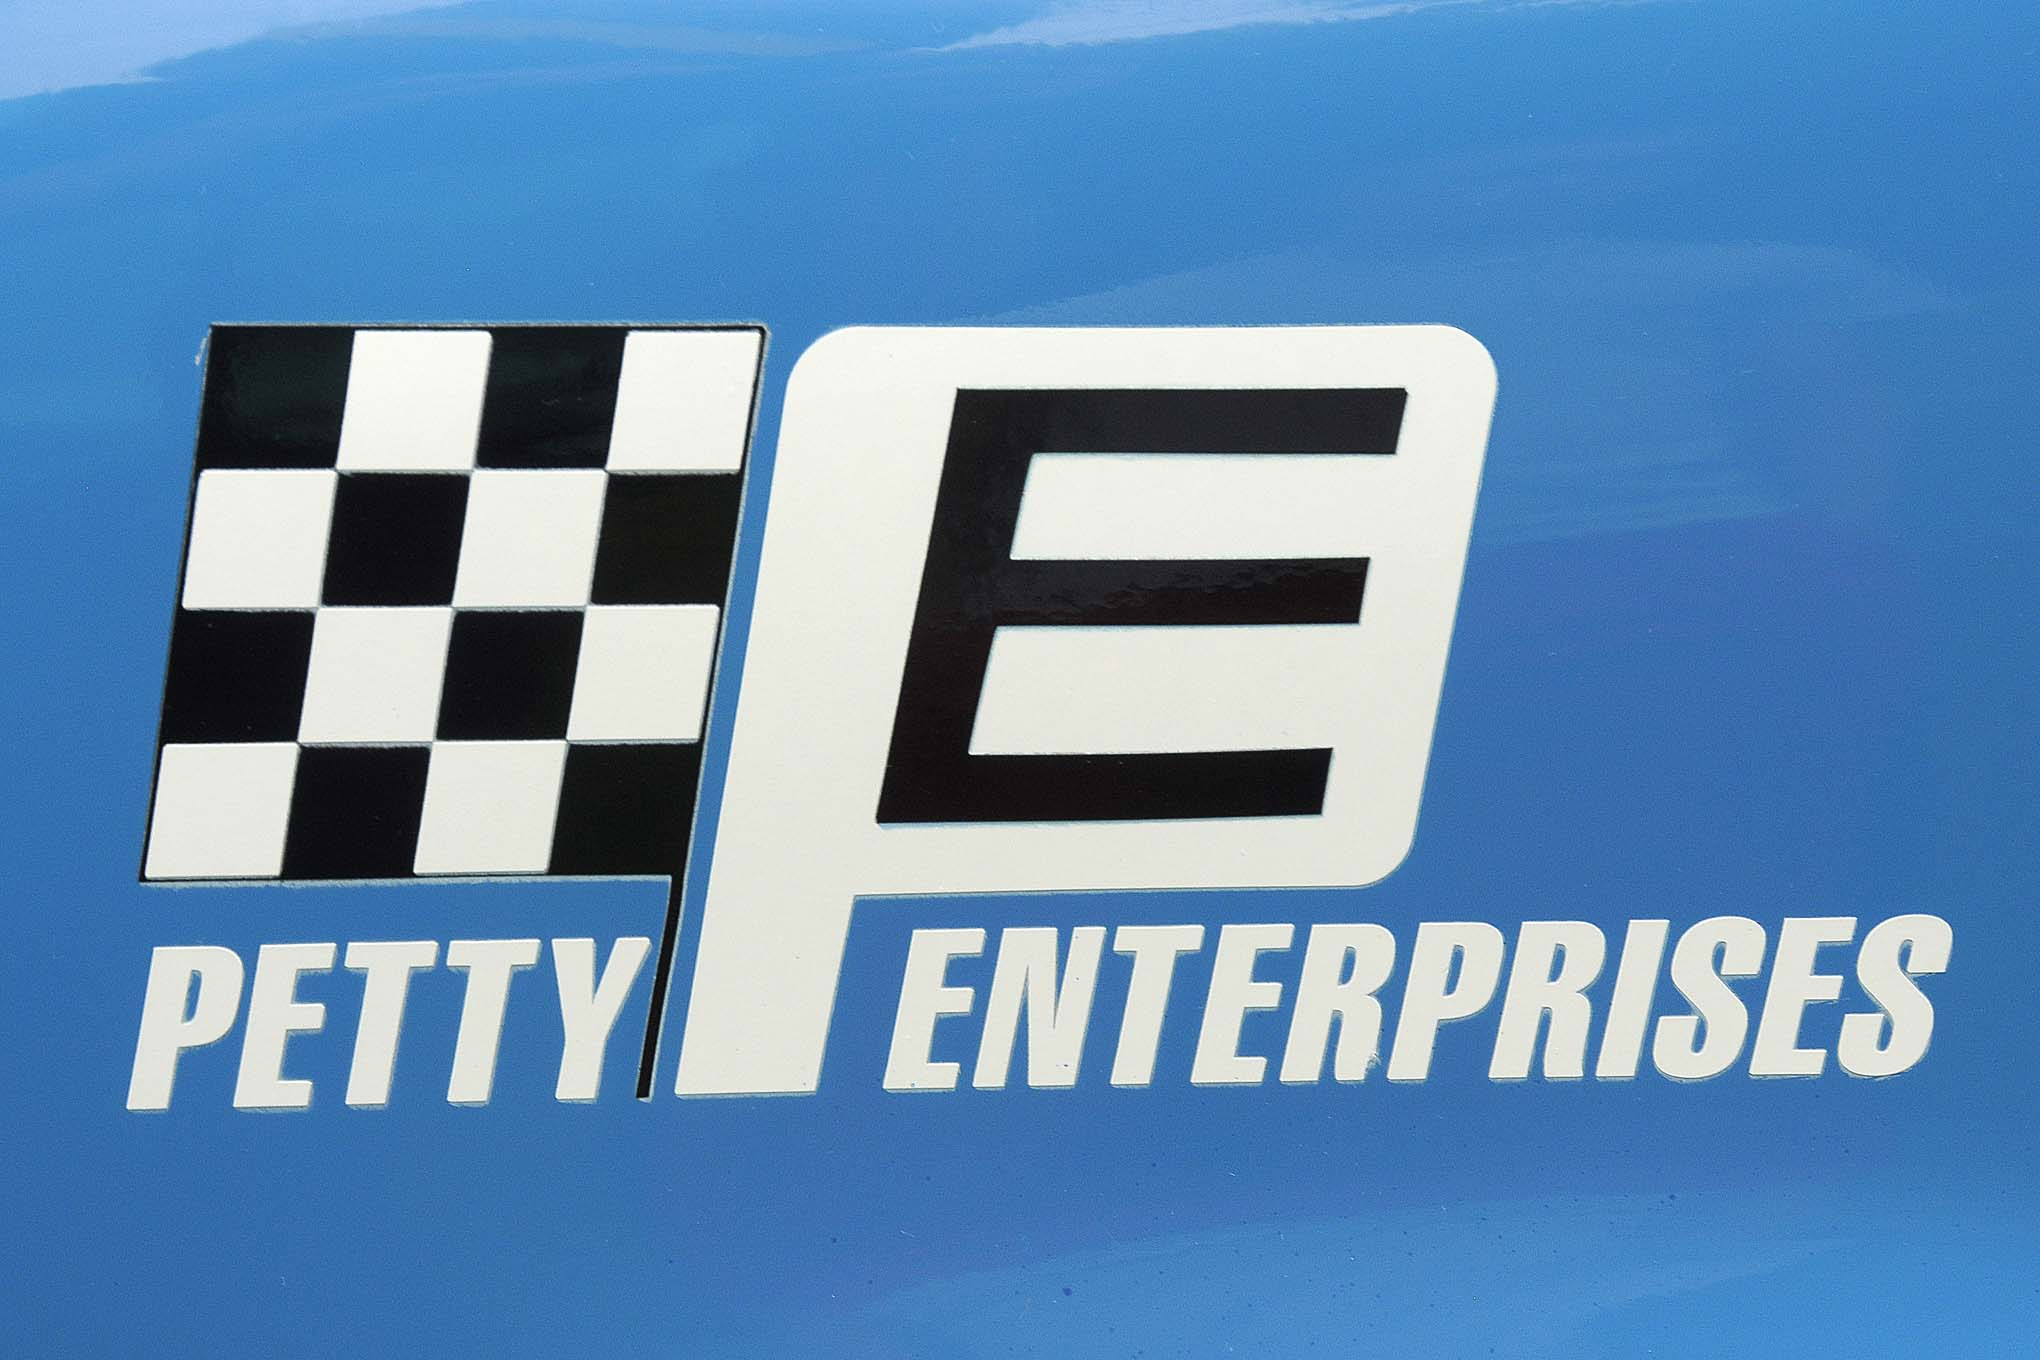 Initially, the cars and parts were marketed through Petty Enterprises, giving the new concept a lot of legitimacy.